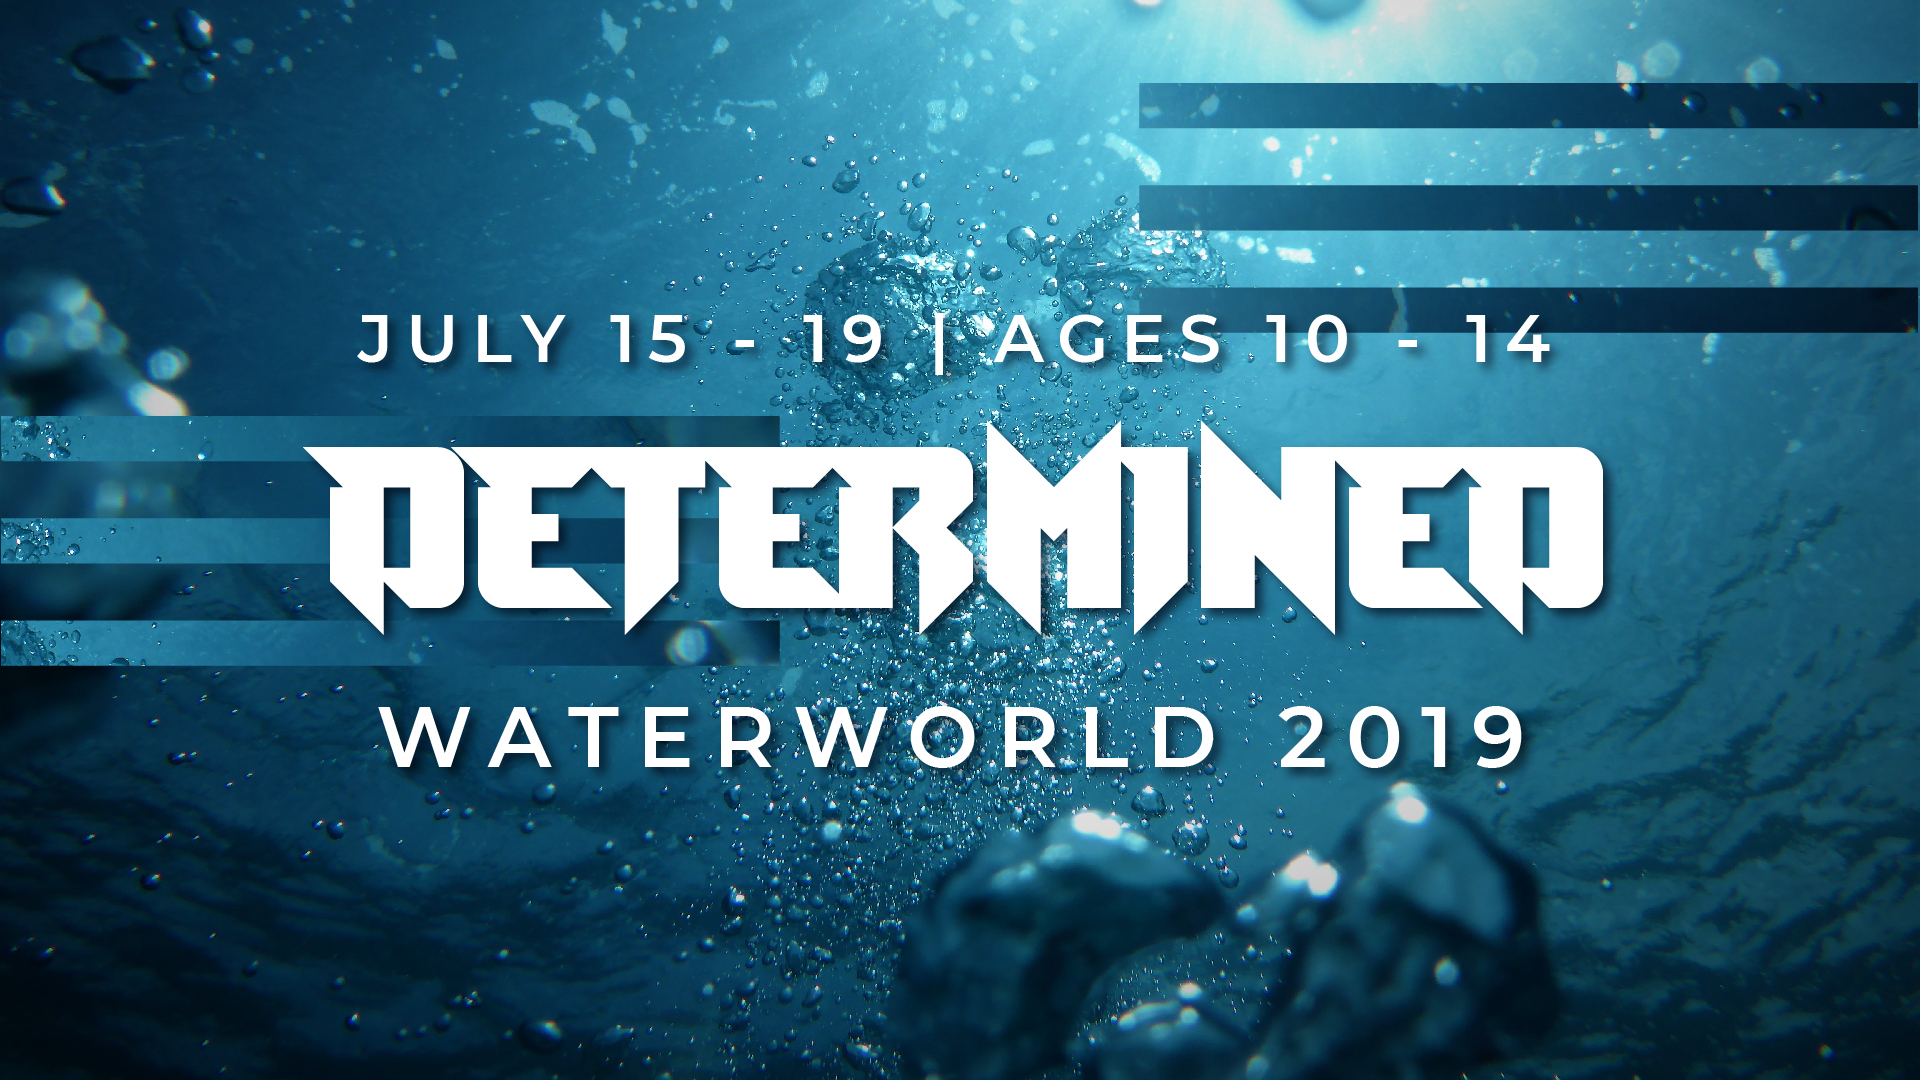 WaterWorld 2019.jpg